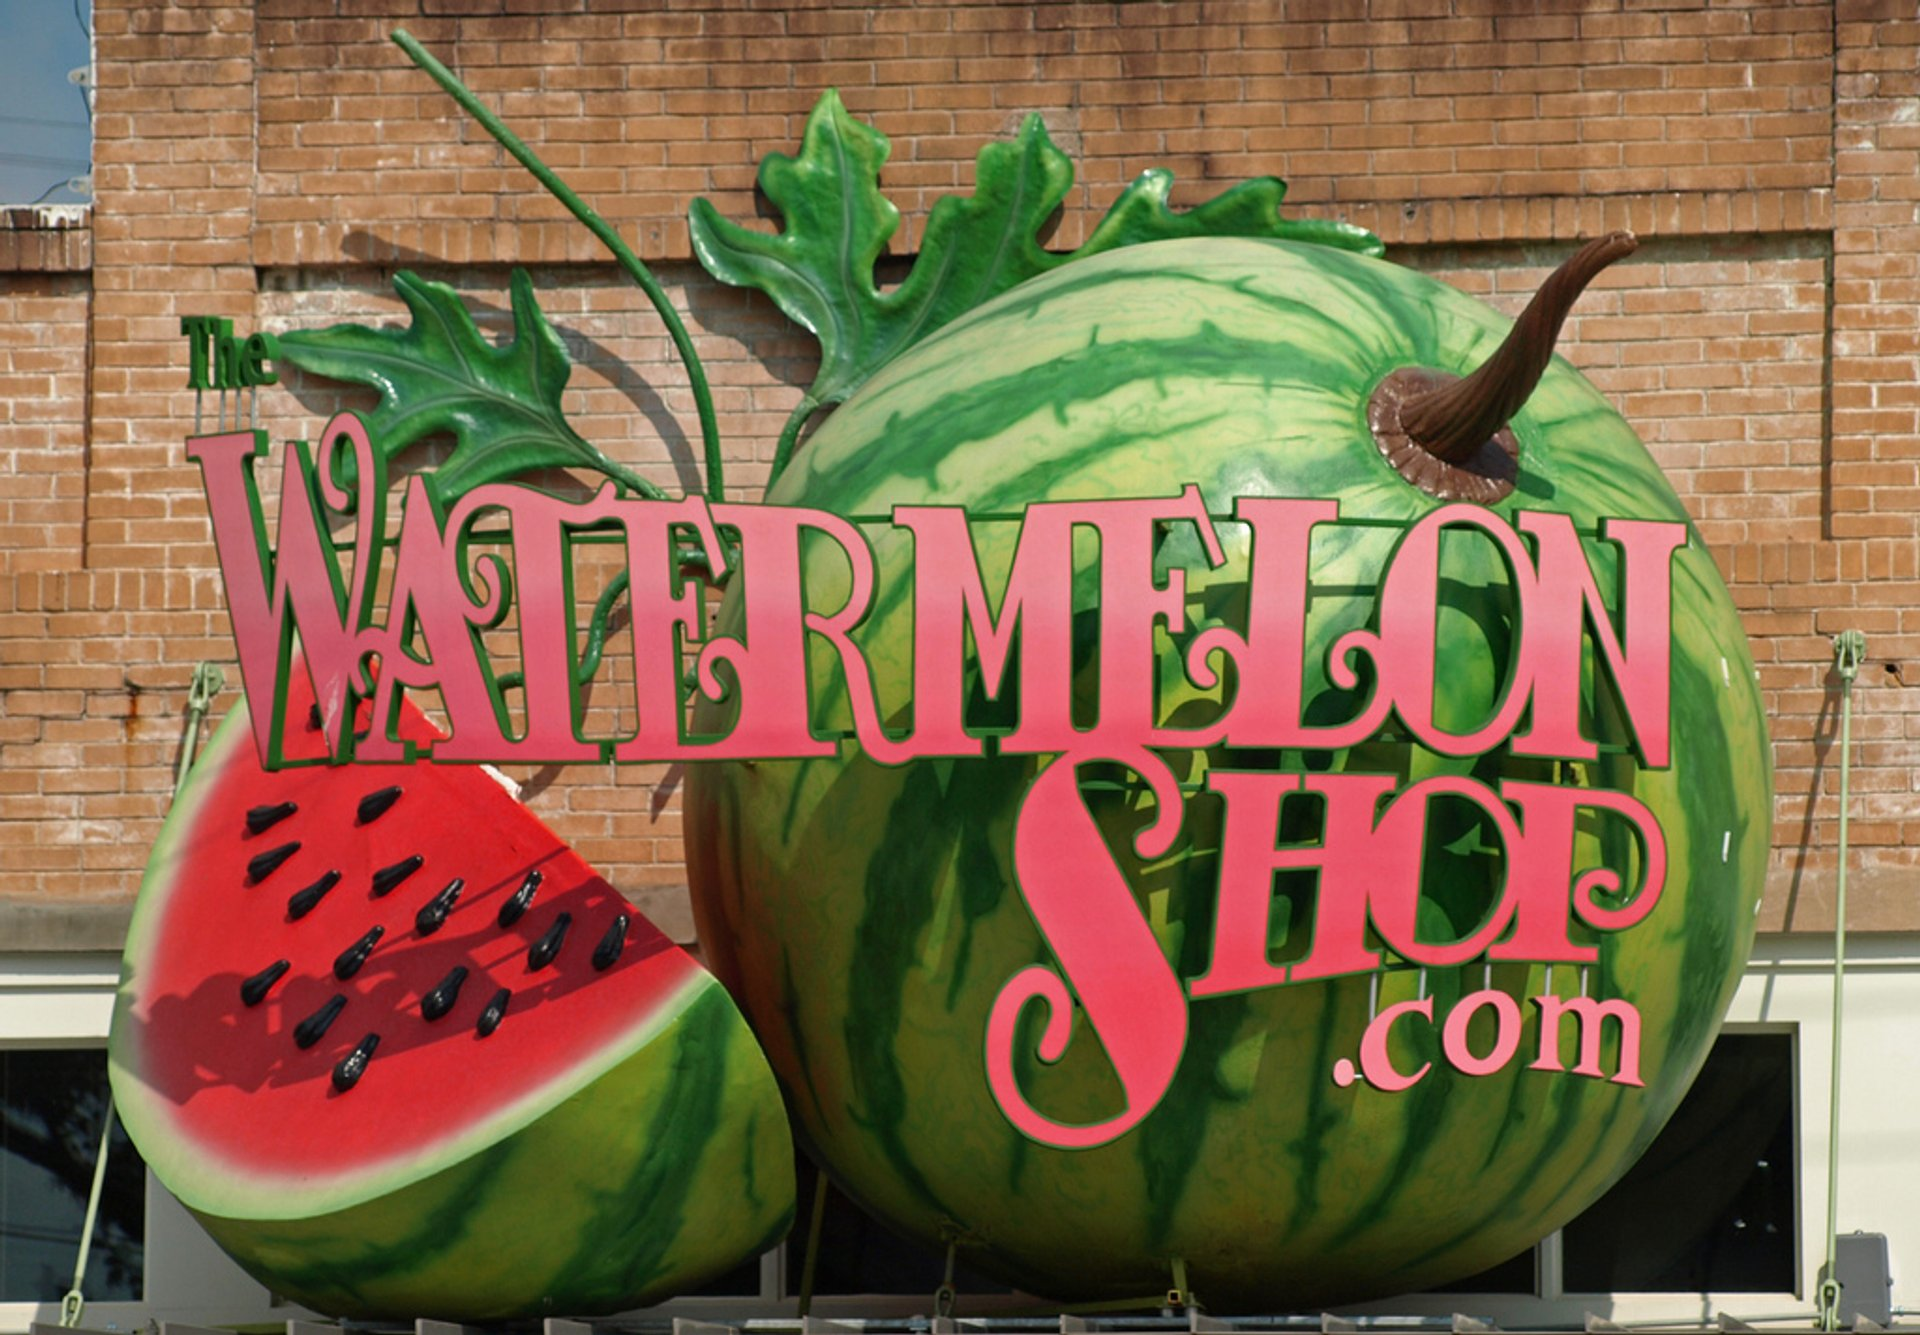 Luling, Watermelon capital of Texas 2020